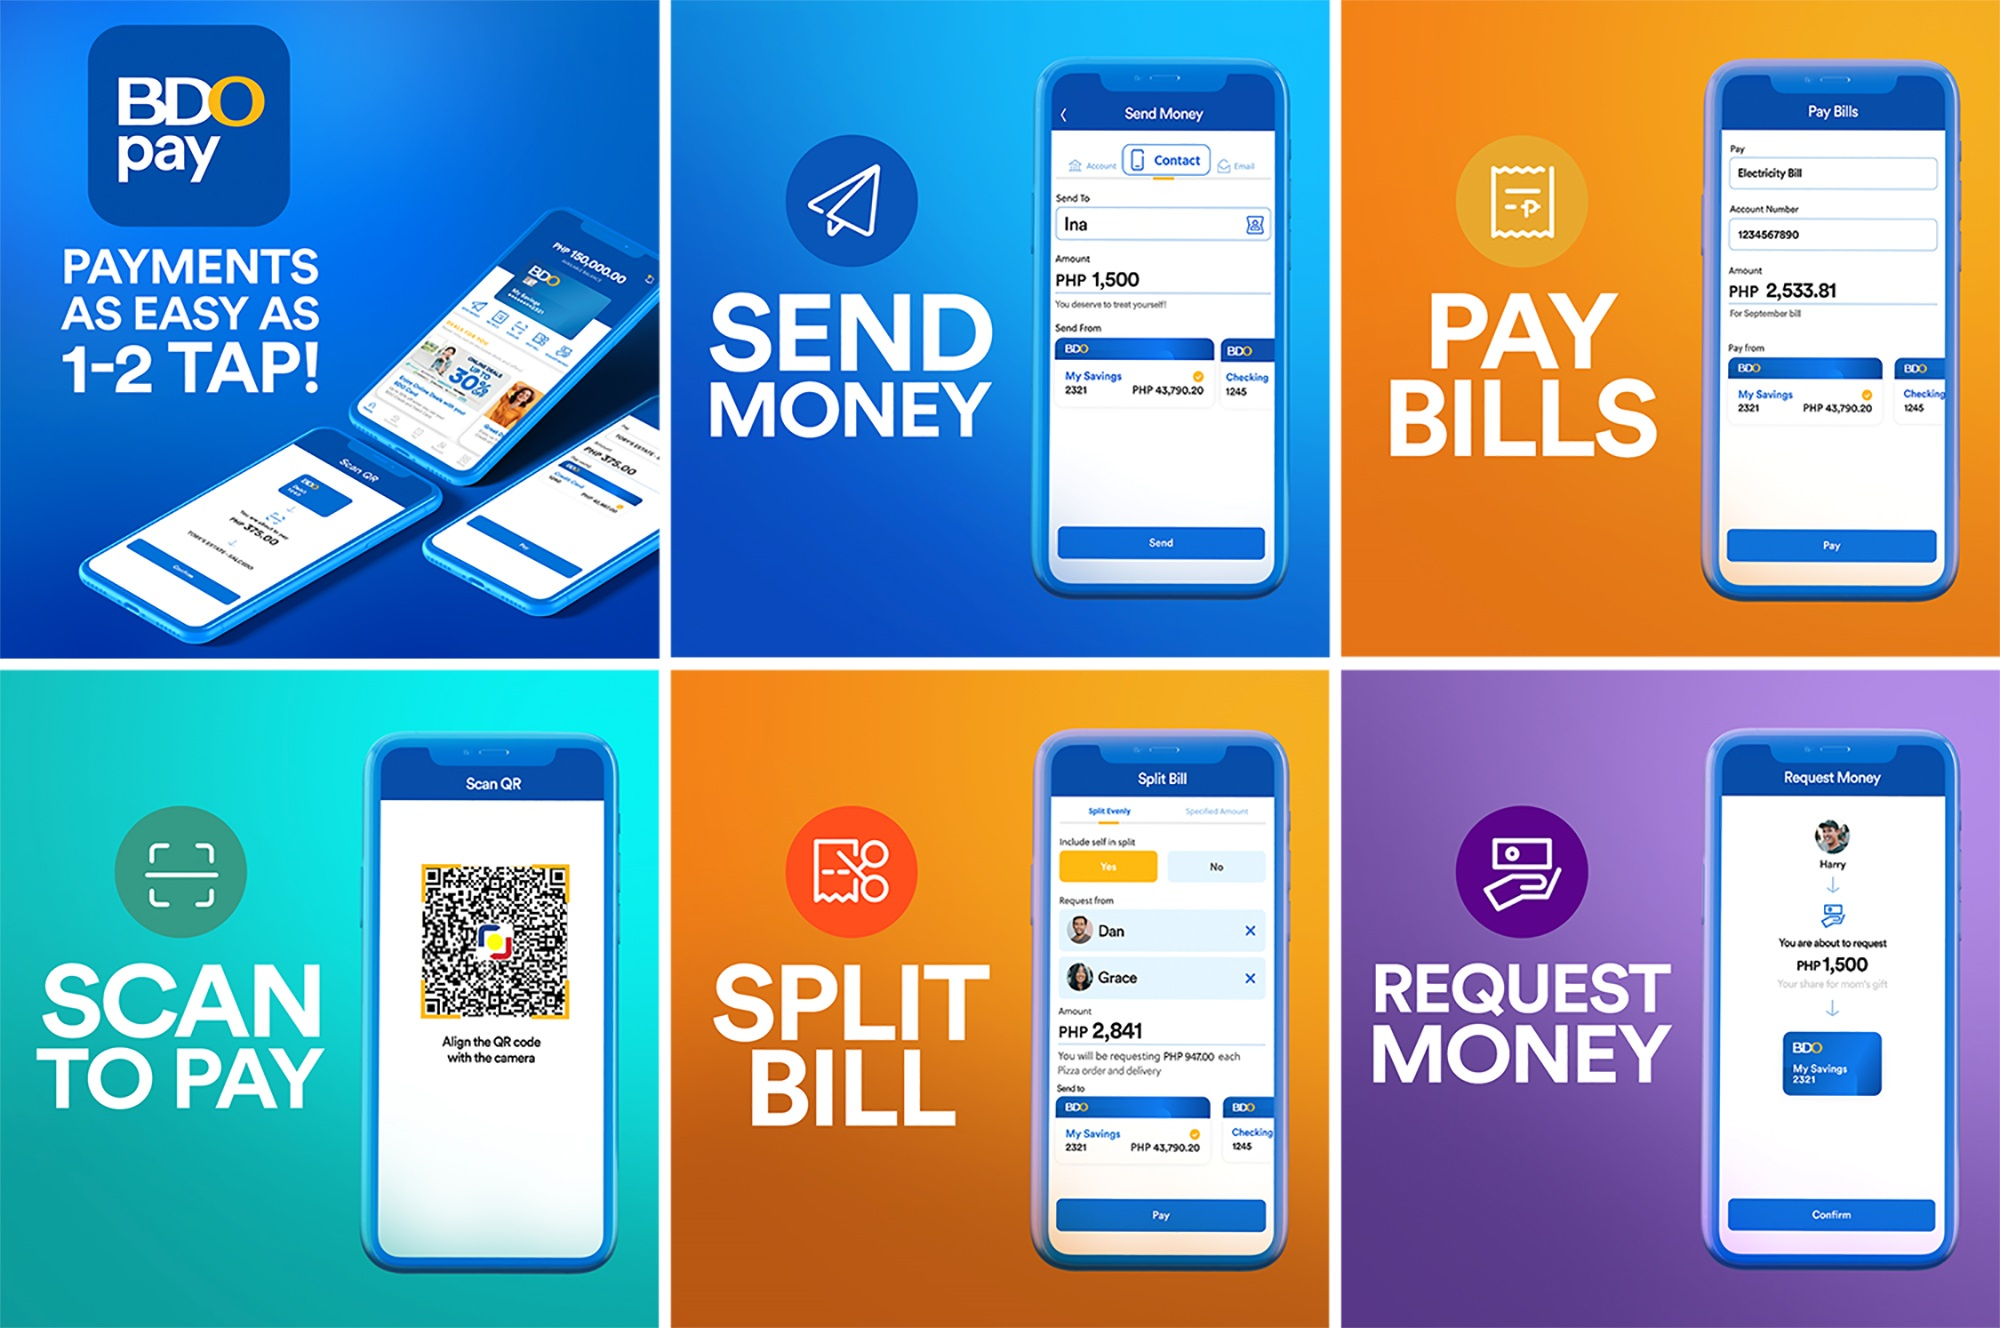 BDO PAY: Features Allow Clients to Manage Finances Easily